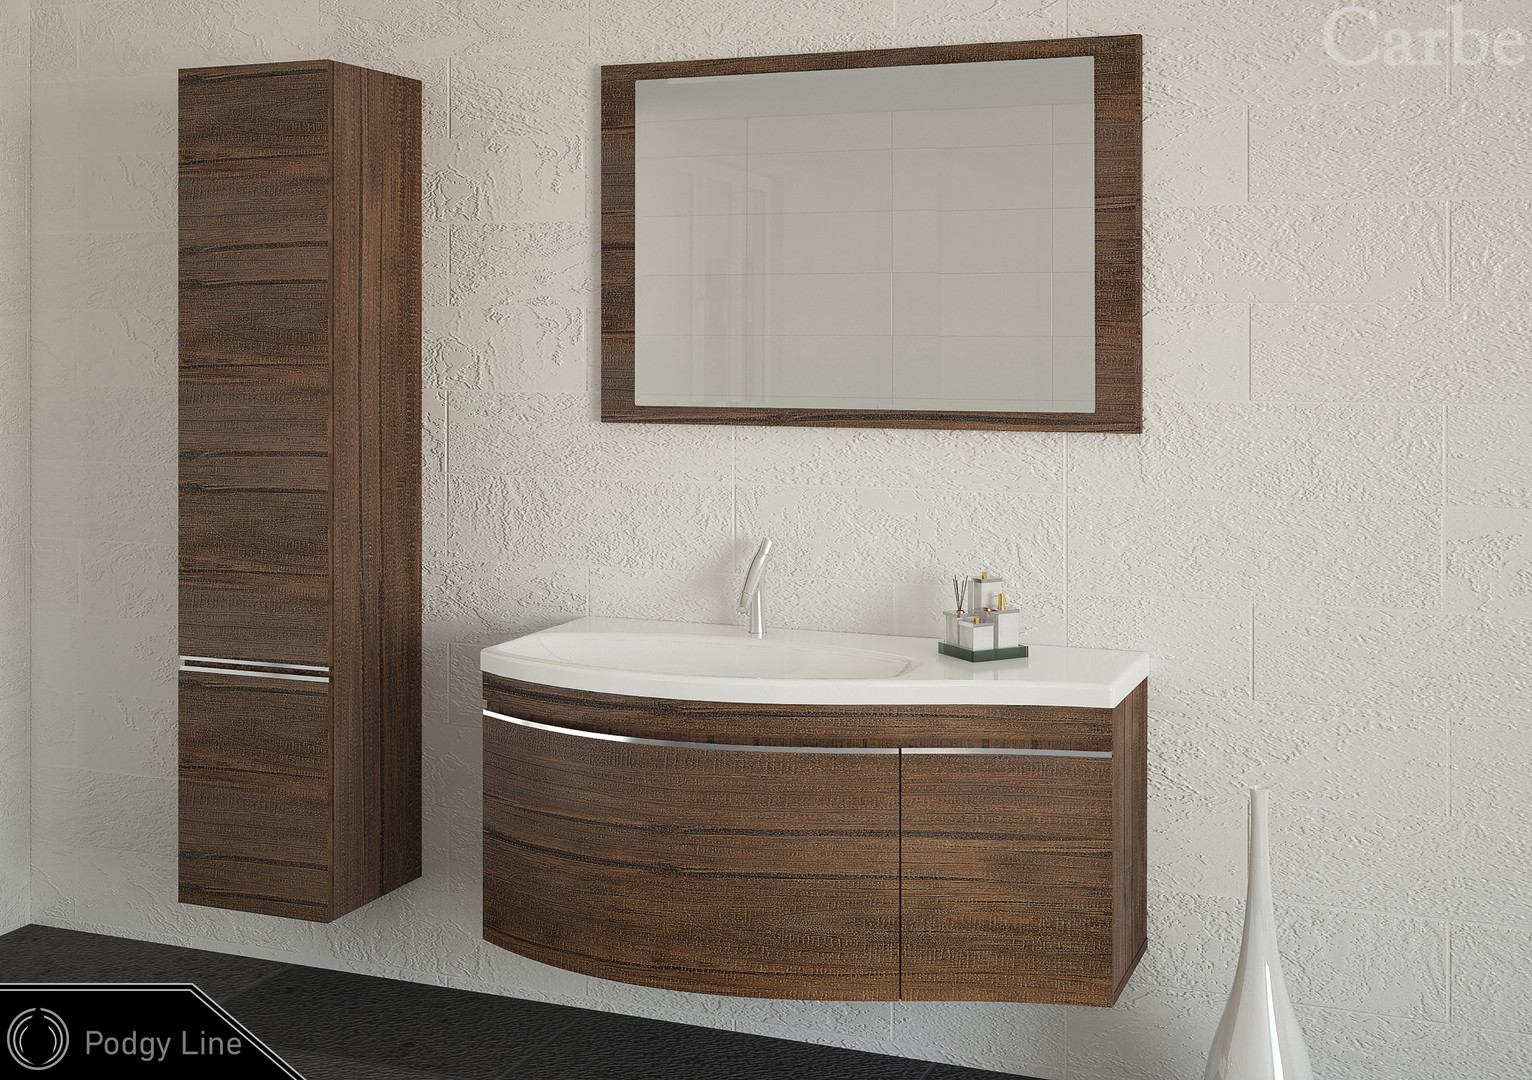 PodgyLine - Oak Antique, Dolmite Washbasin, Soft Closing